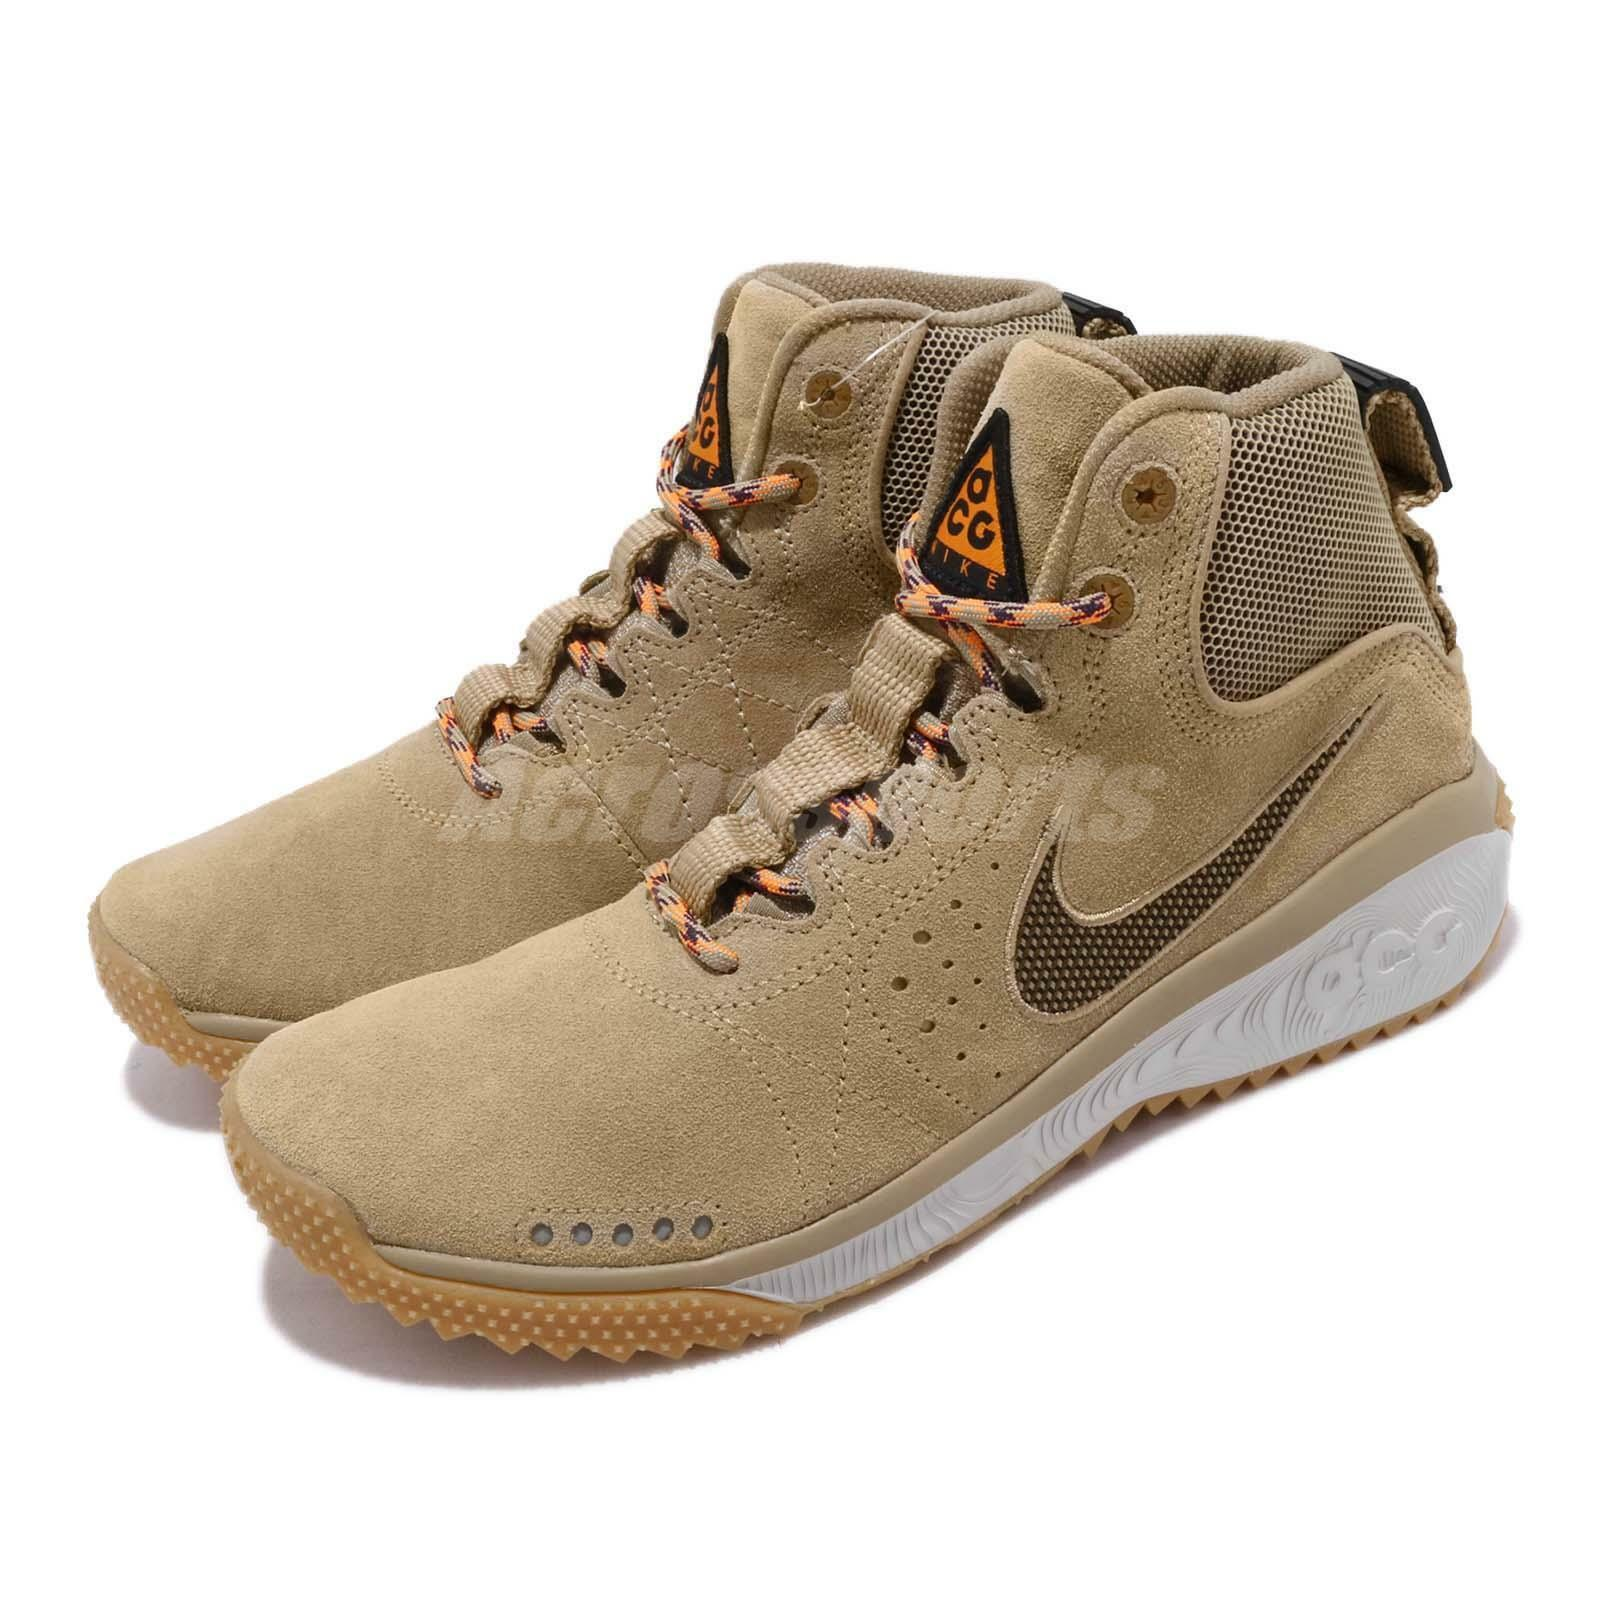 Nike ACG Angels Rest Parachute Beige Men Outdoors Trail shoes Boots AQ0917-200